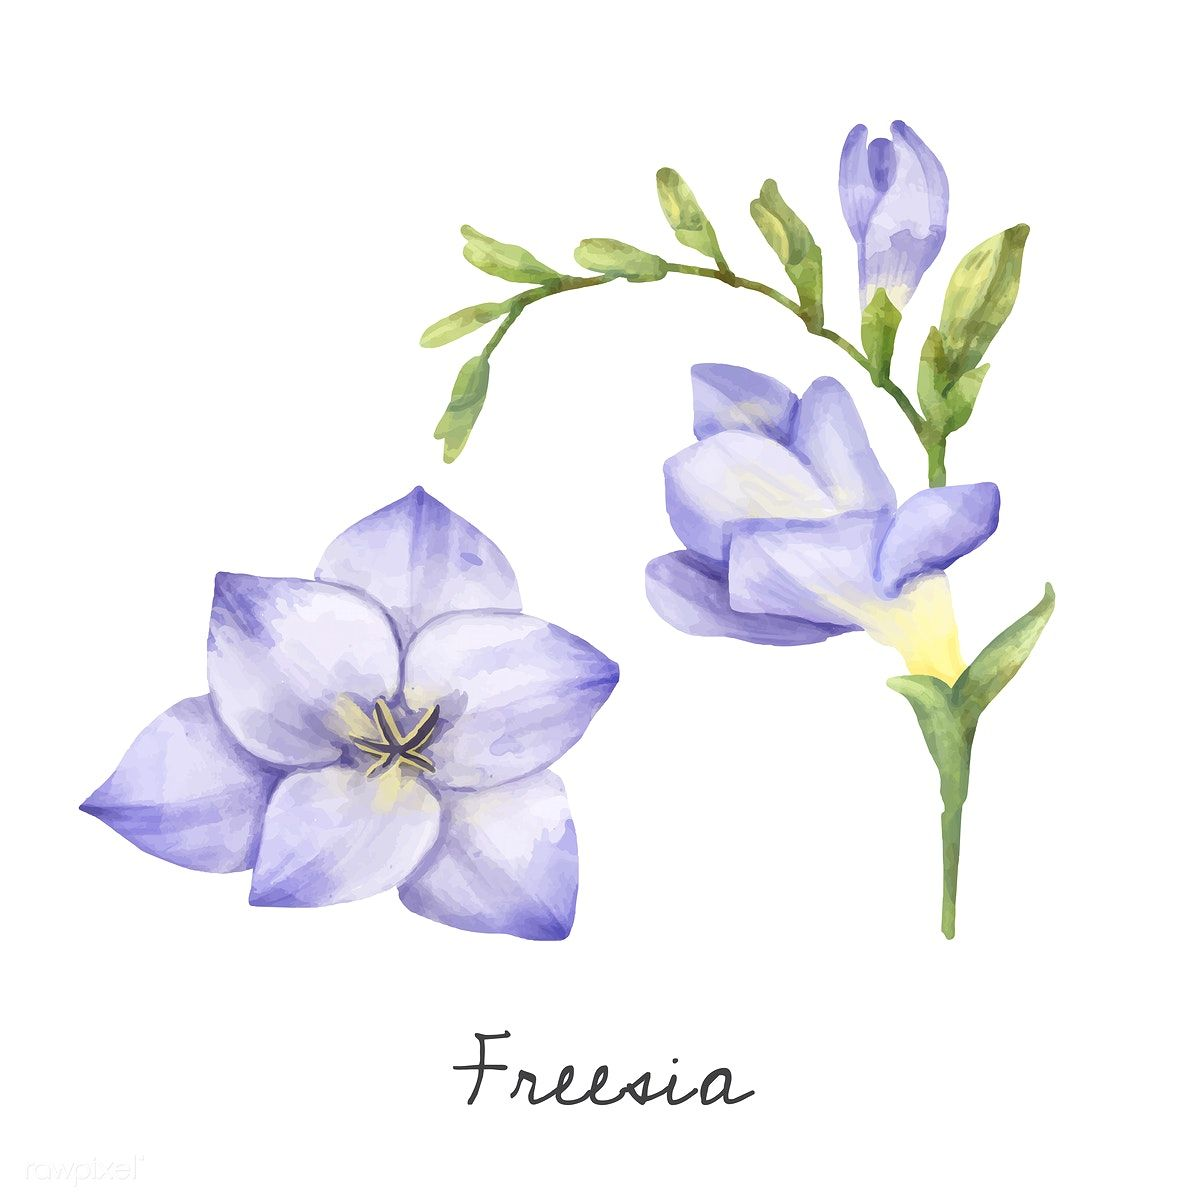 Illustration of Freesia flower isolated on white background.